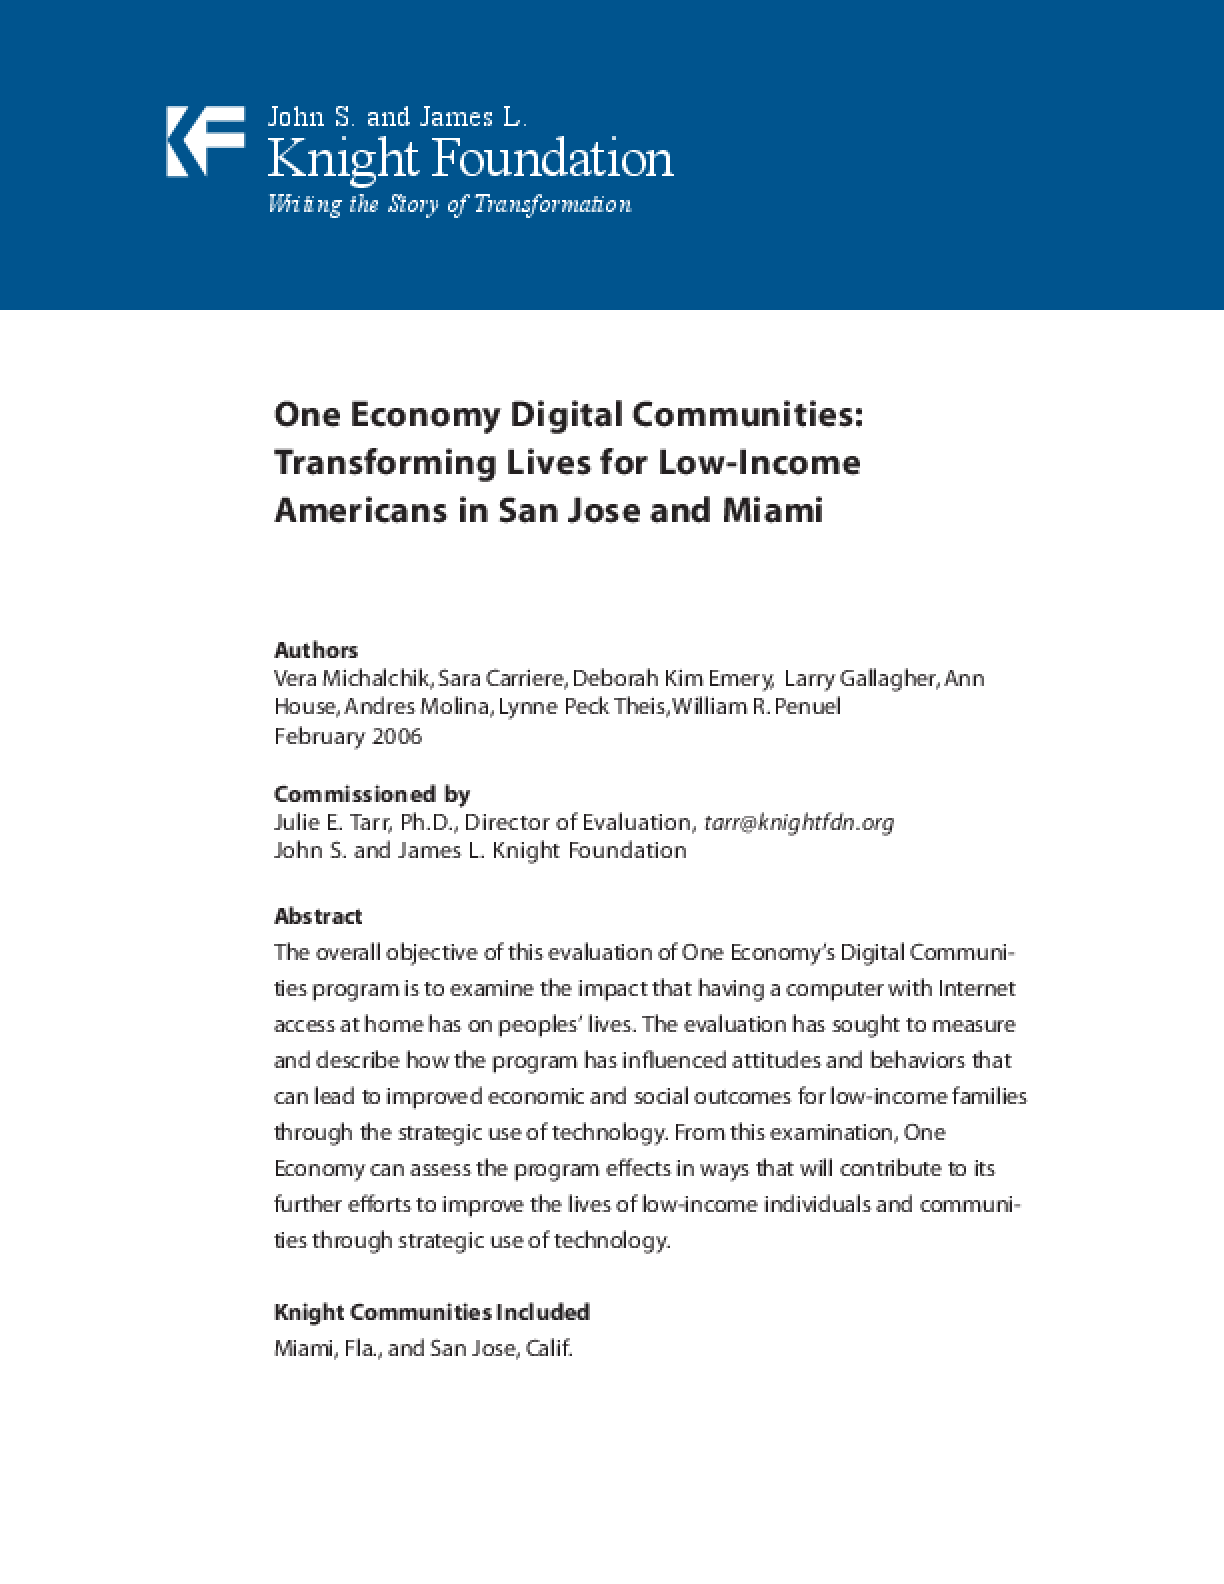 One Economy Digital Communities: Transforming Lives for Low-Income Americans in San Jose and Miami